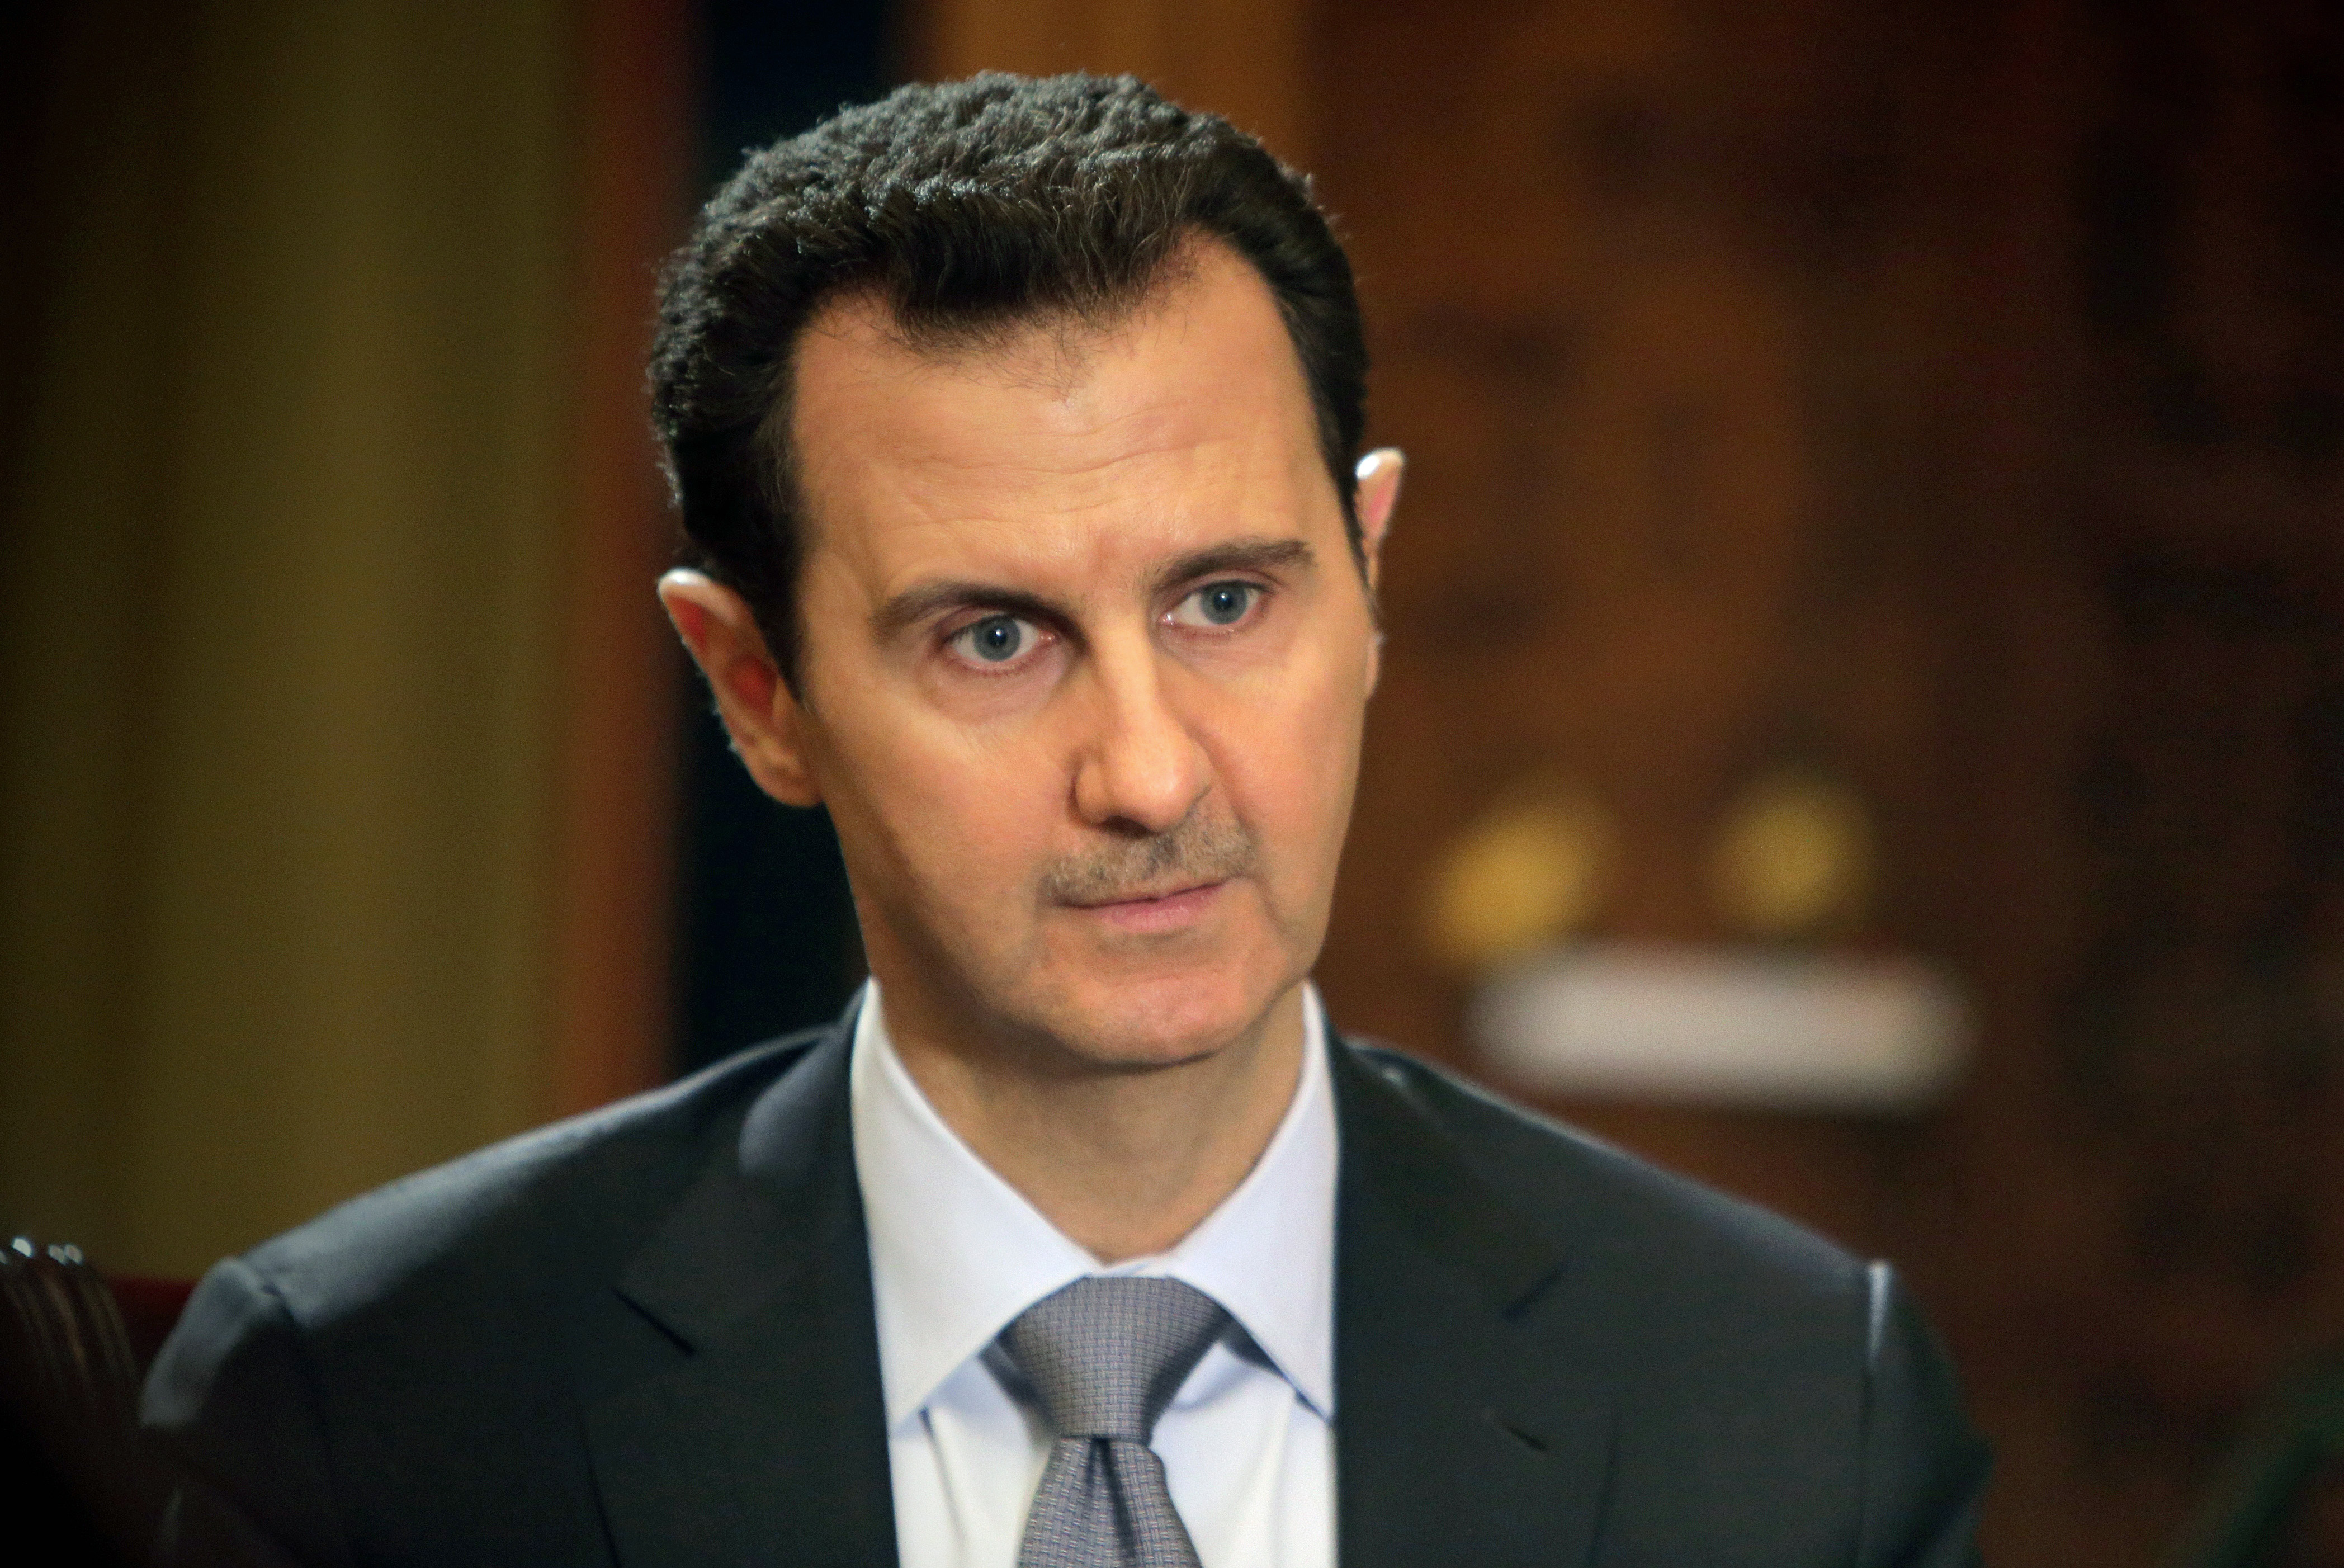 Syrian President Bashar al-Assad gives an interview to AFP at the presidential palace in Damascus on Jan. 20, 2014.